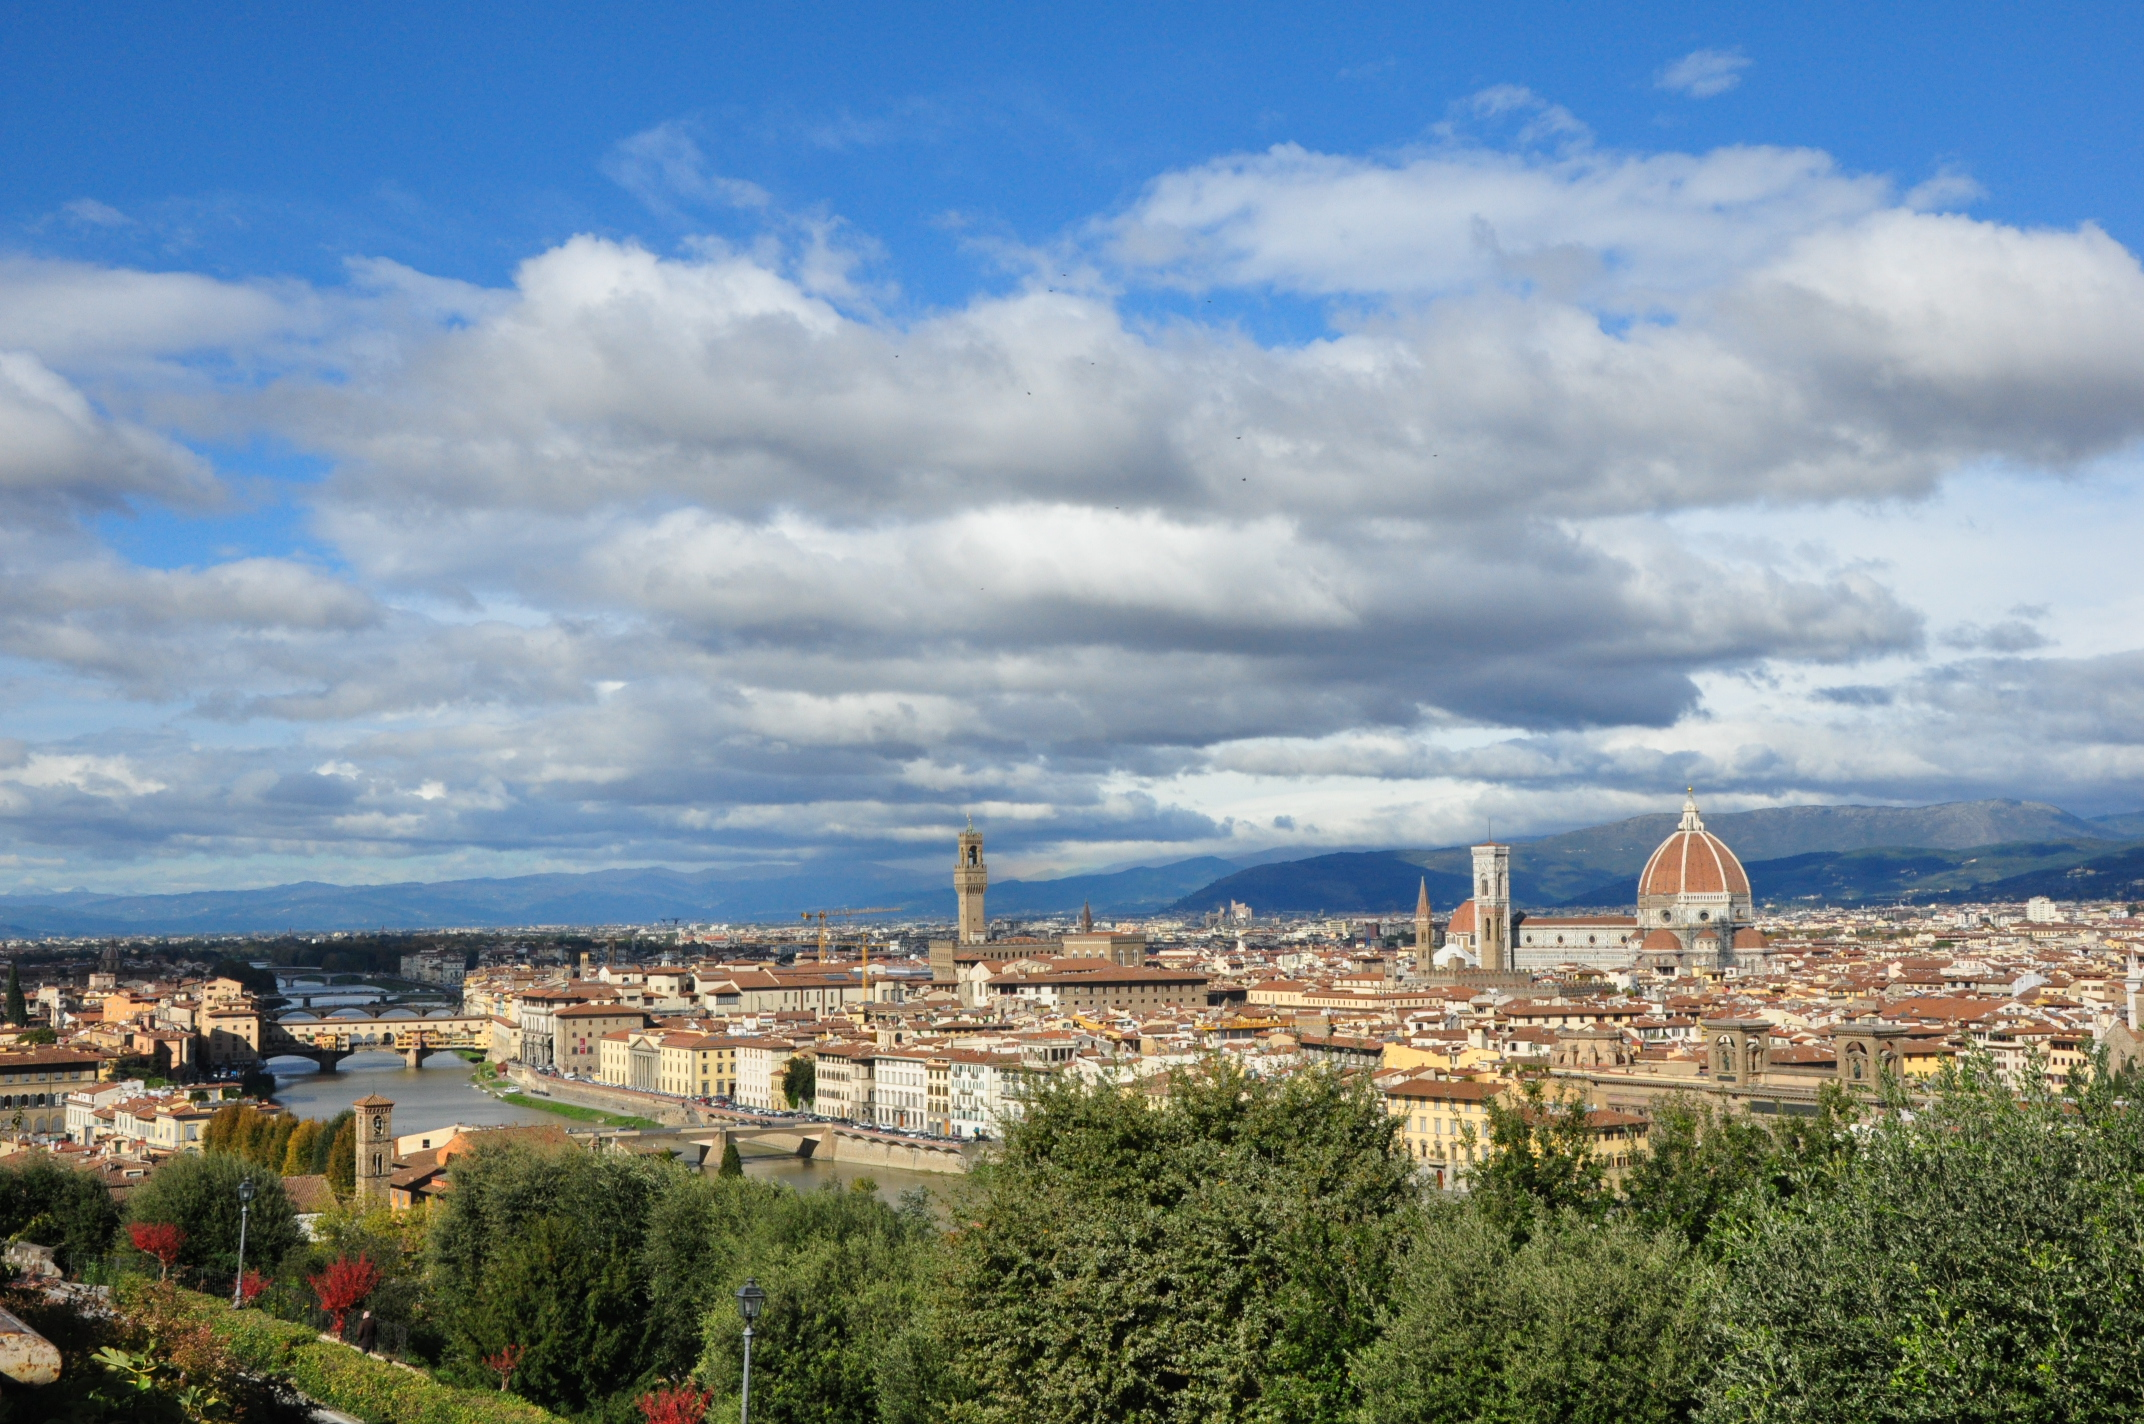 10 Top Photo Ops: Where to Find the Best Views of Italy